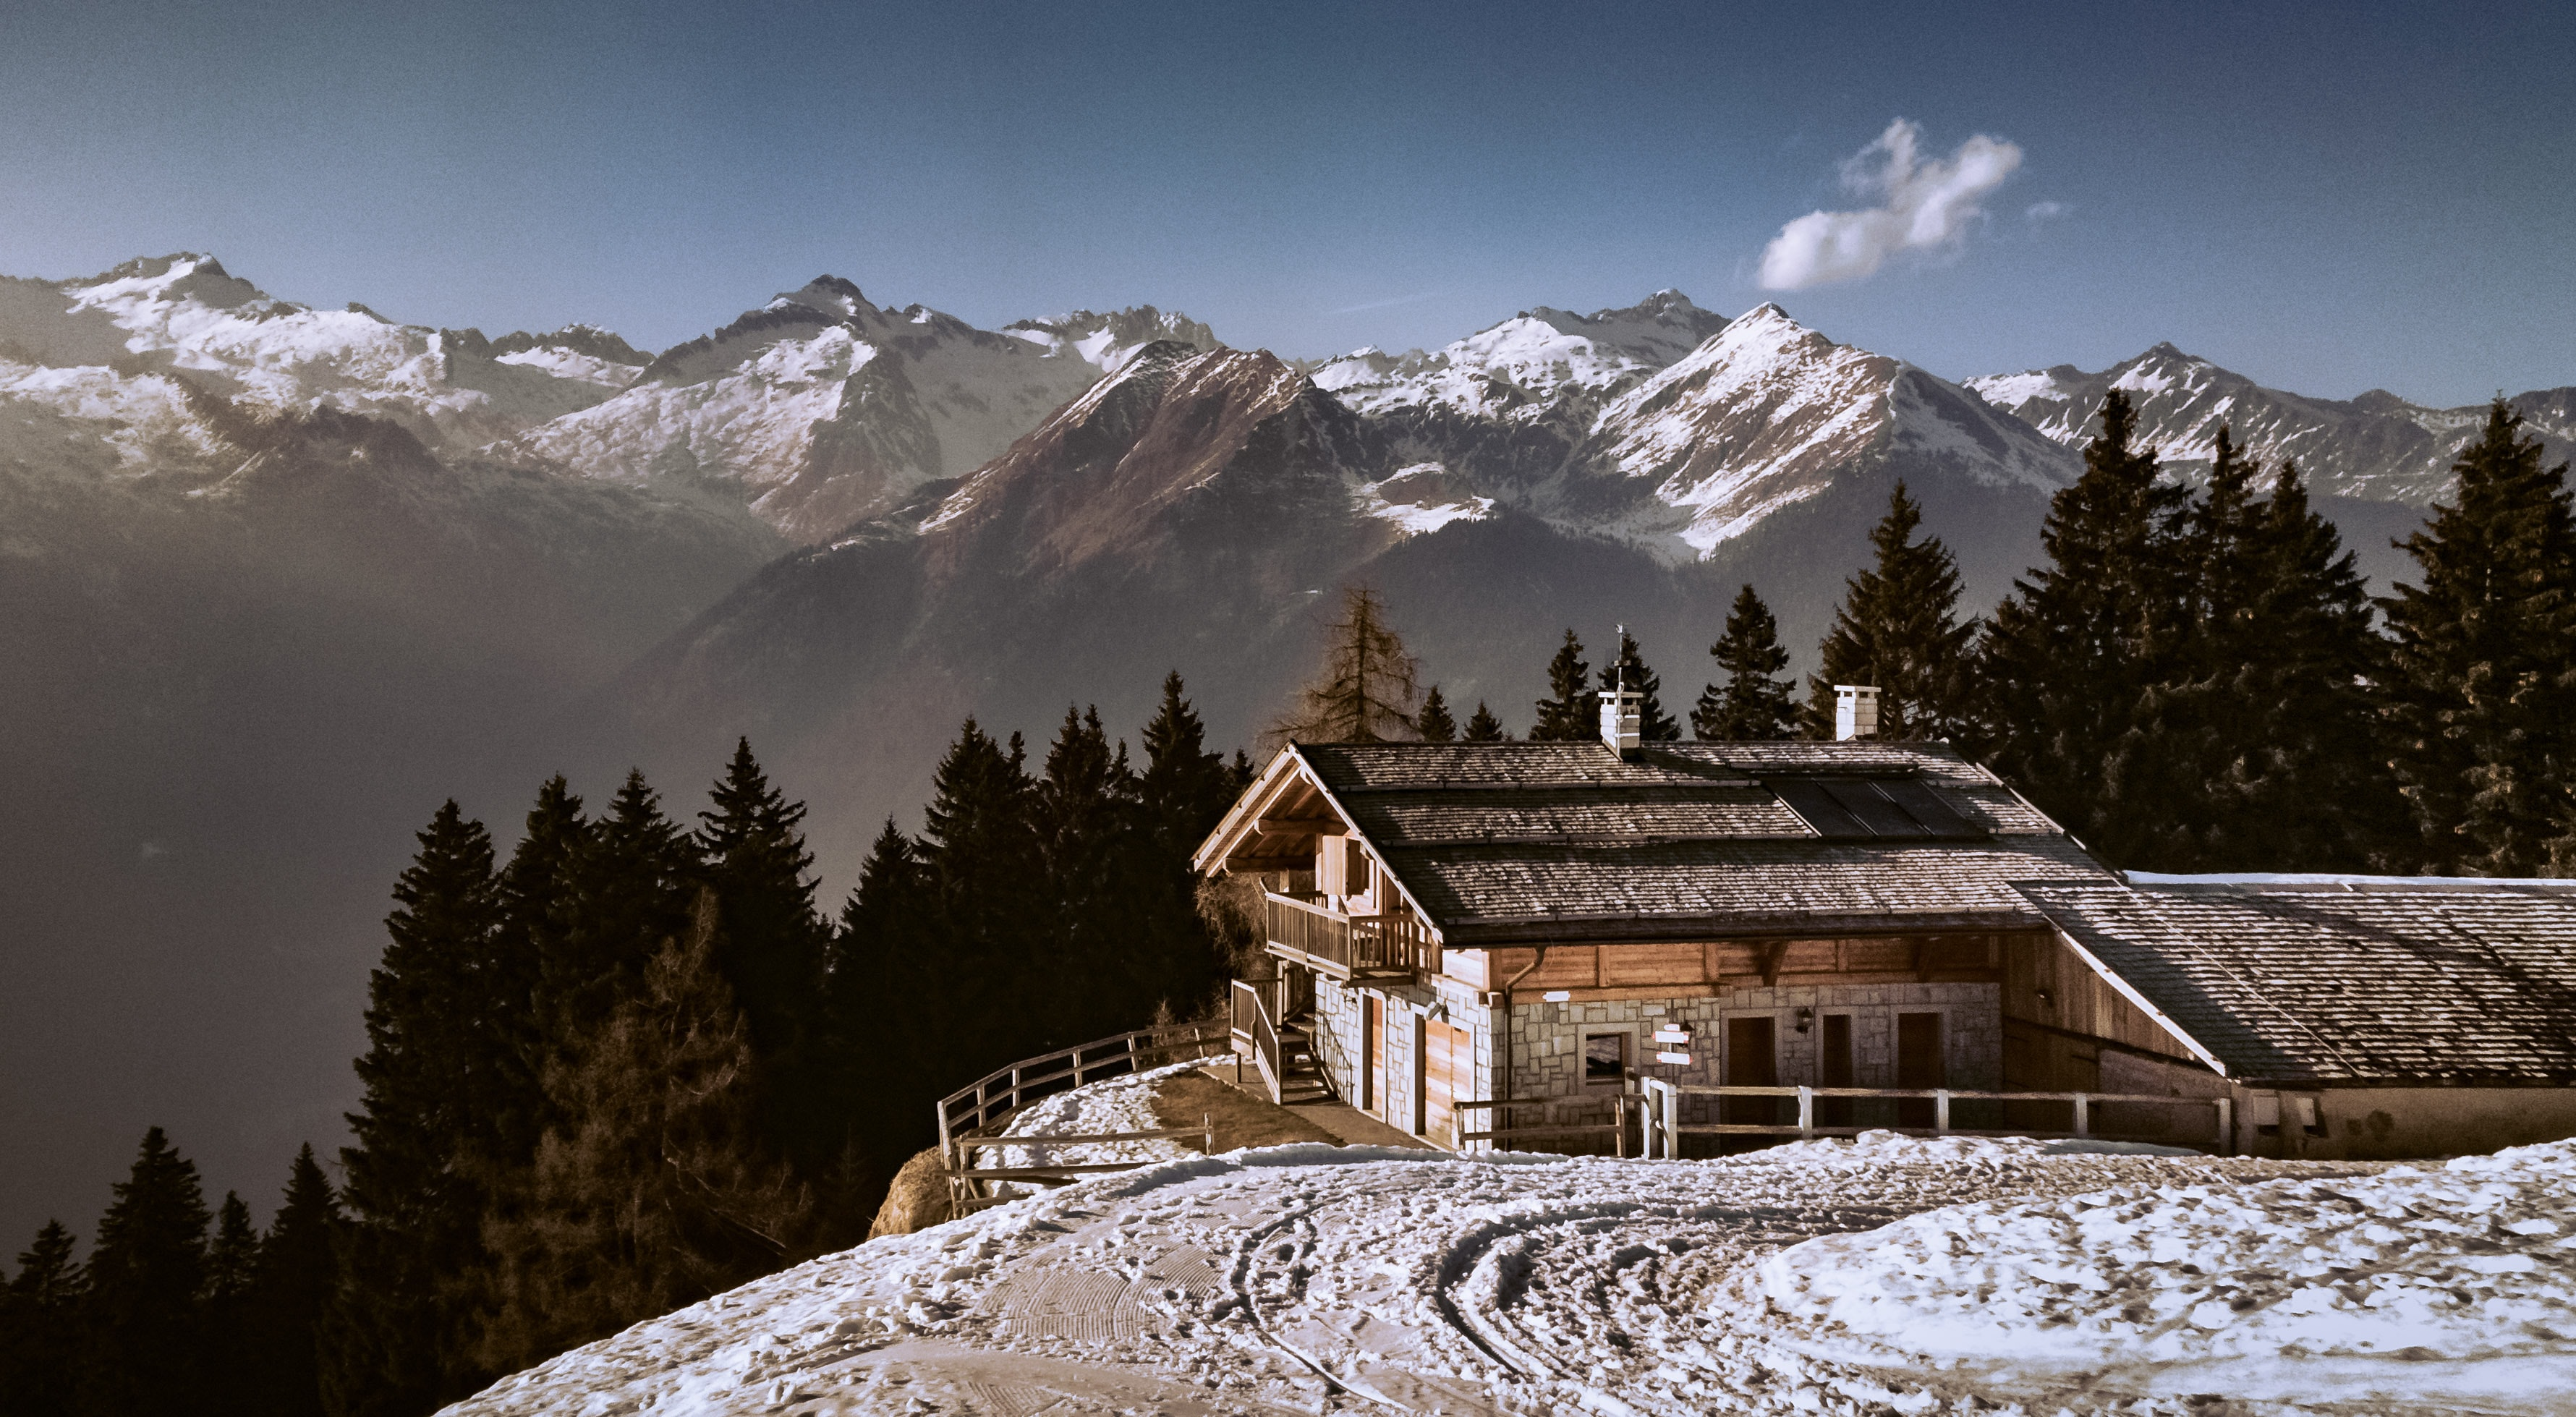 A building on a hillside in snowy mountains in Madonna di Campiglio